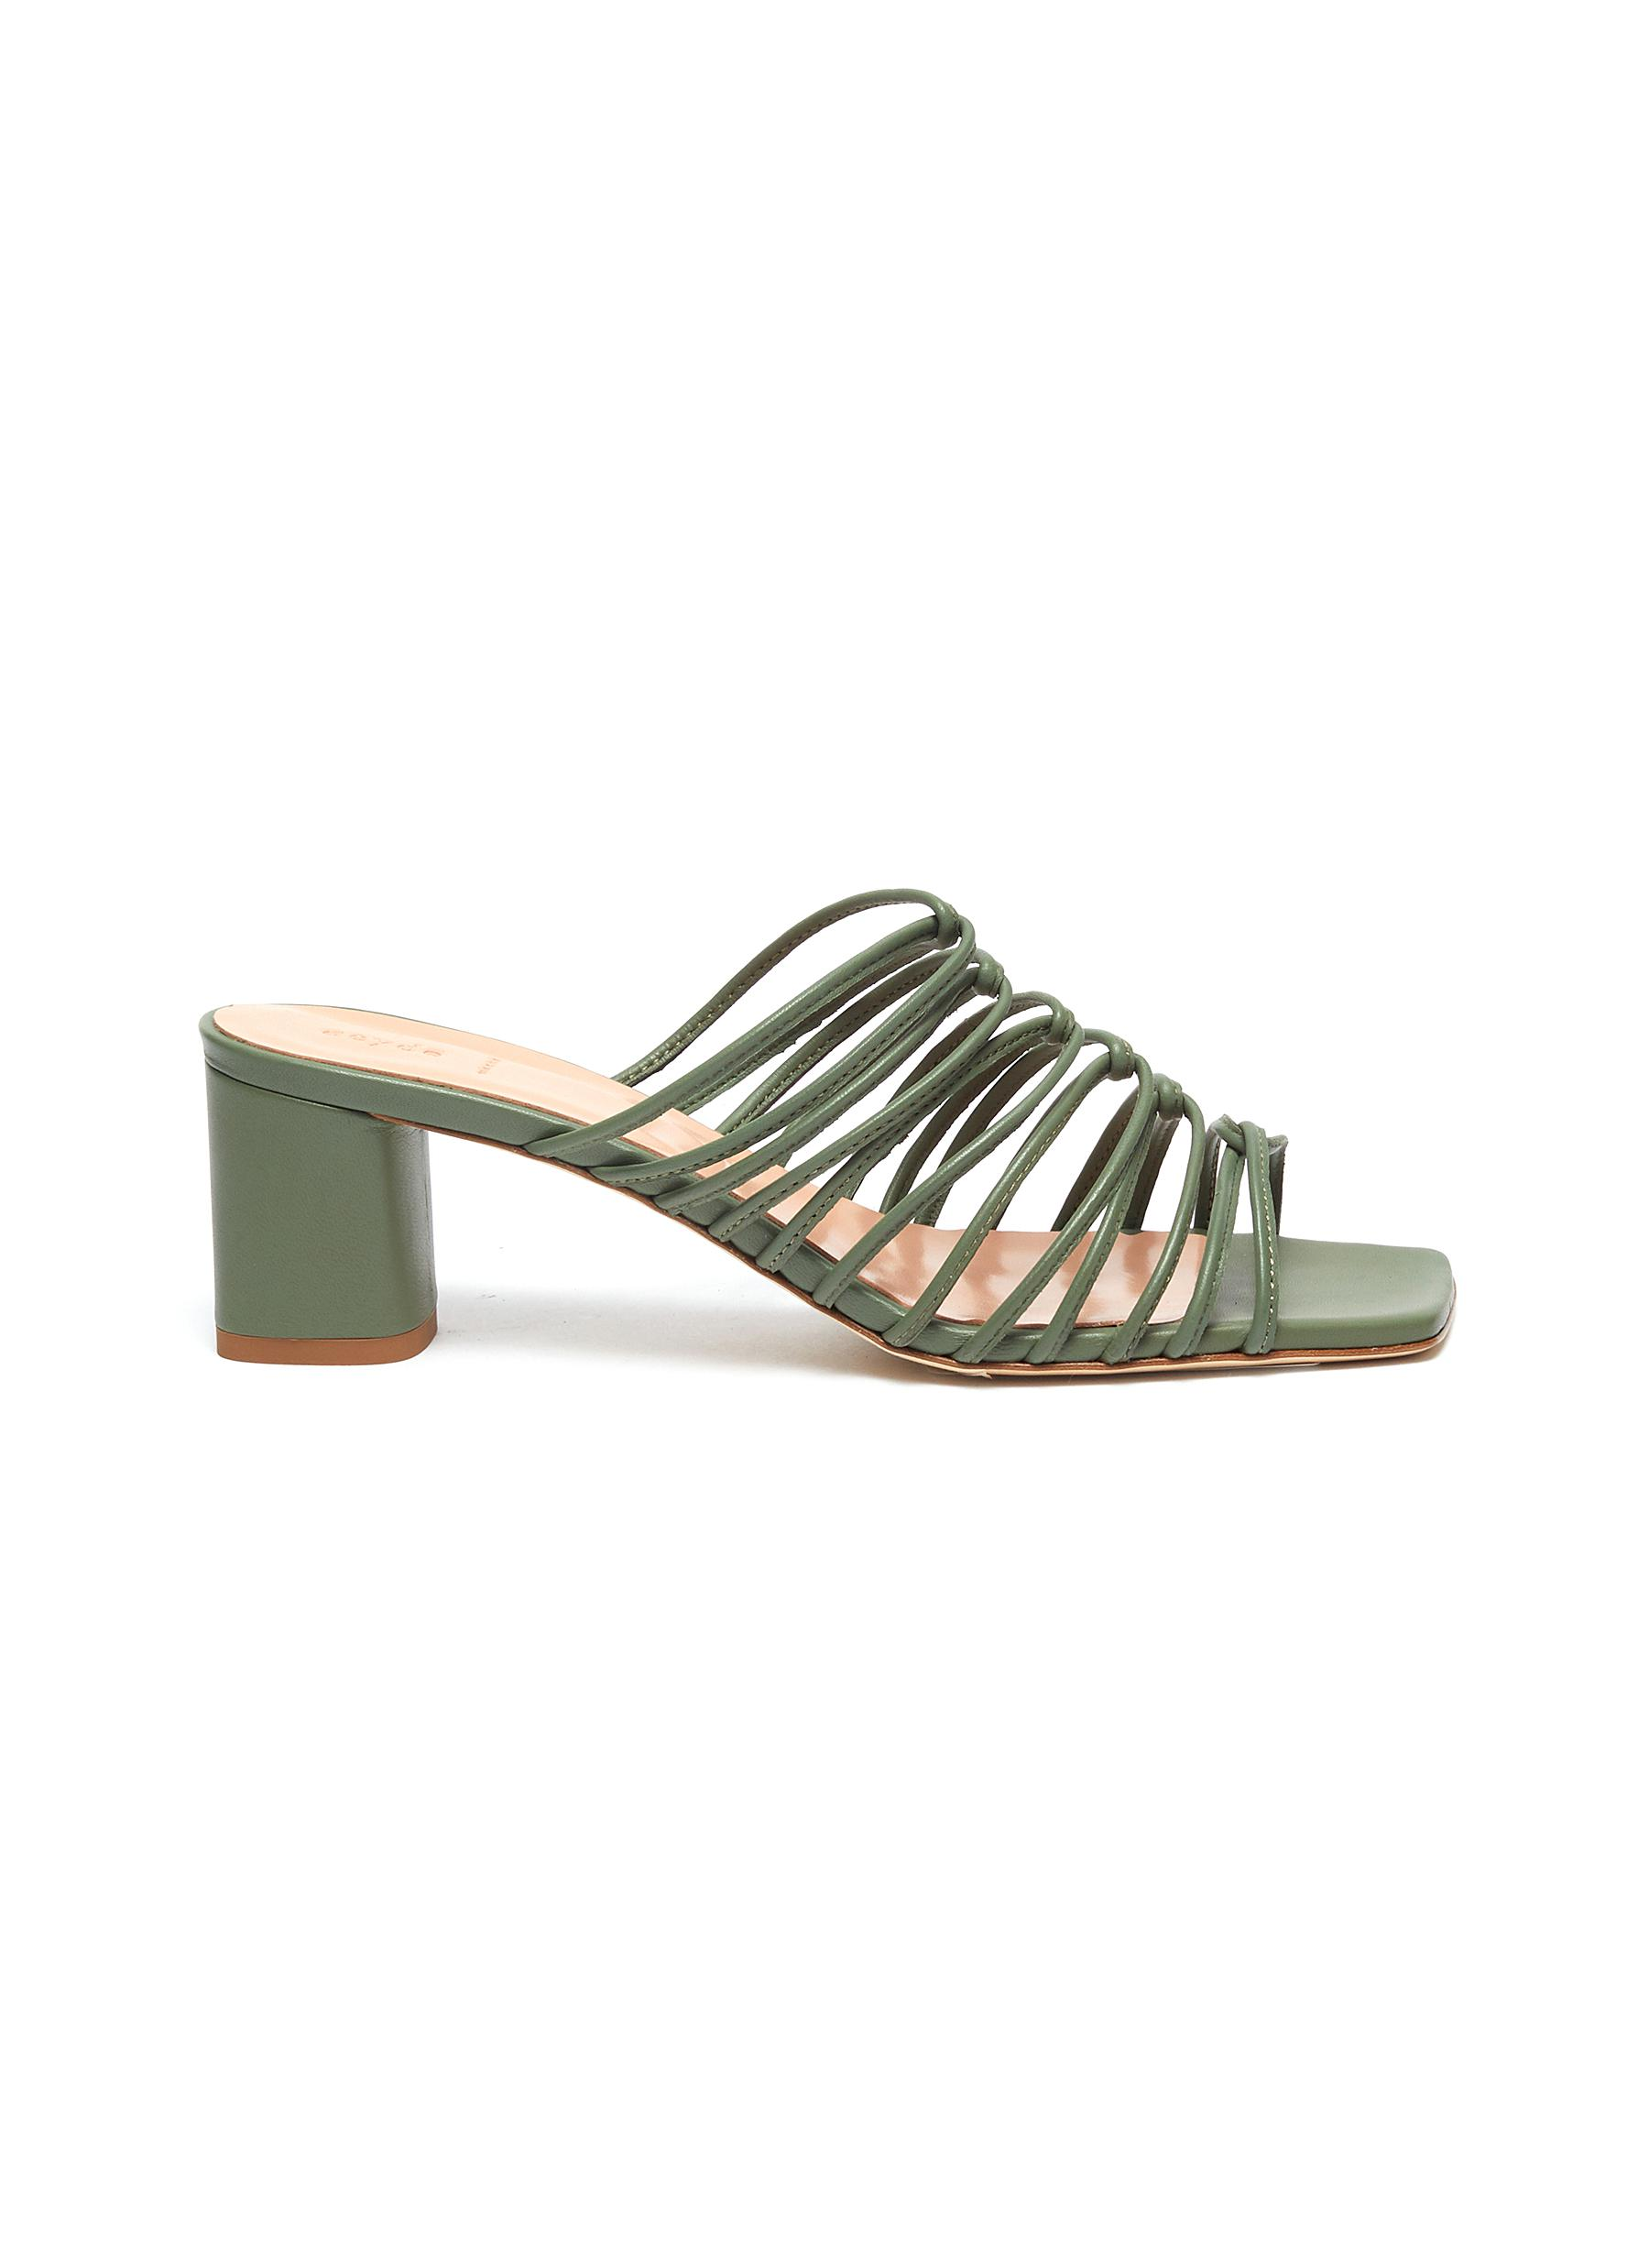 Pearl strappy leather sandals by Aeyde